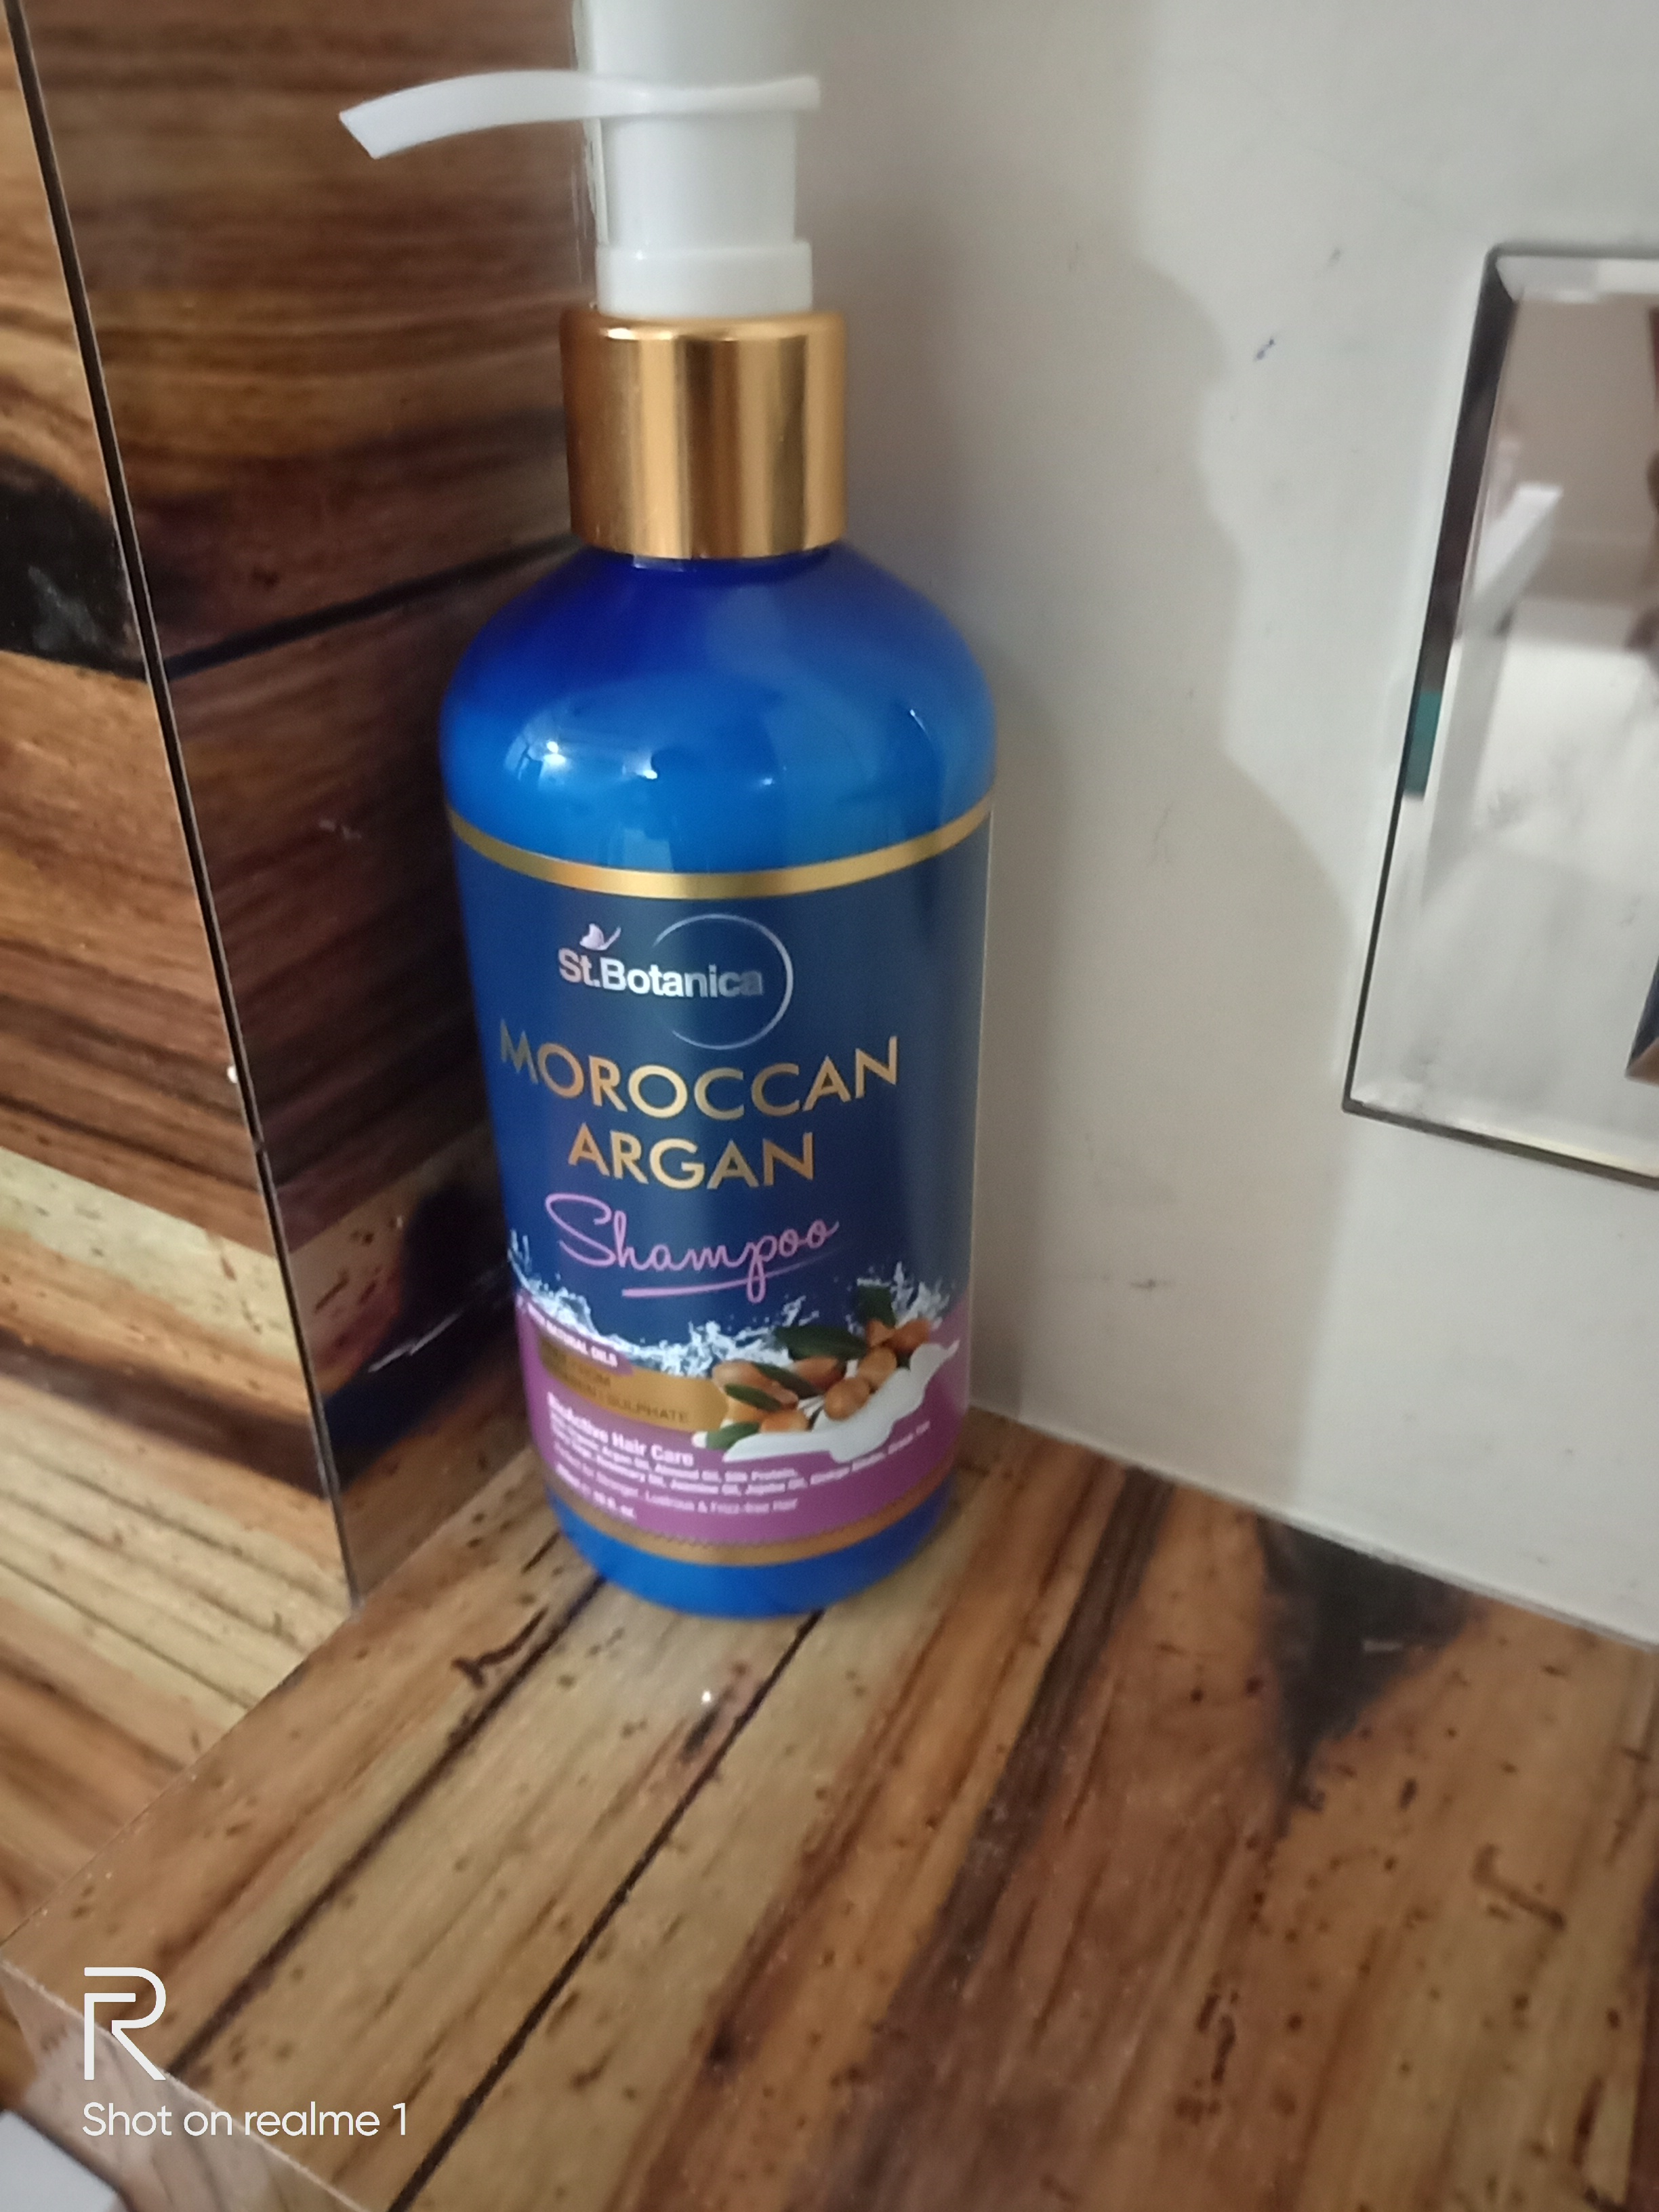 StBotanica Moroccan Argan Hair Shampoo-Easy to get soft & amp; silky hair in one wash.-By bhagyashree_kanuga_nimani